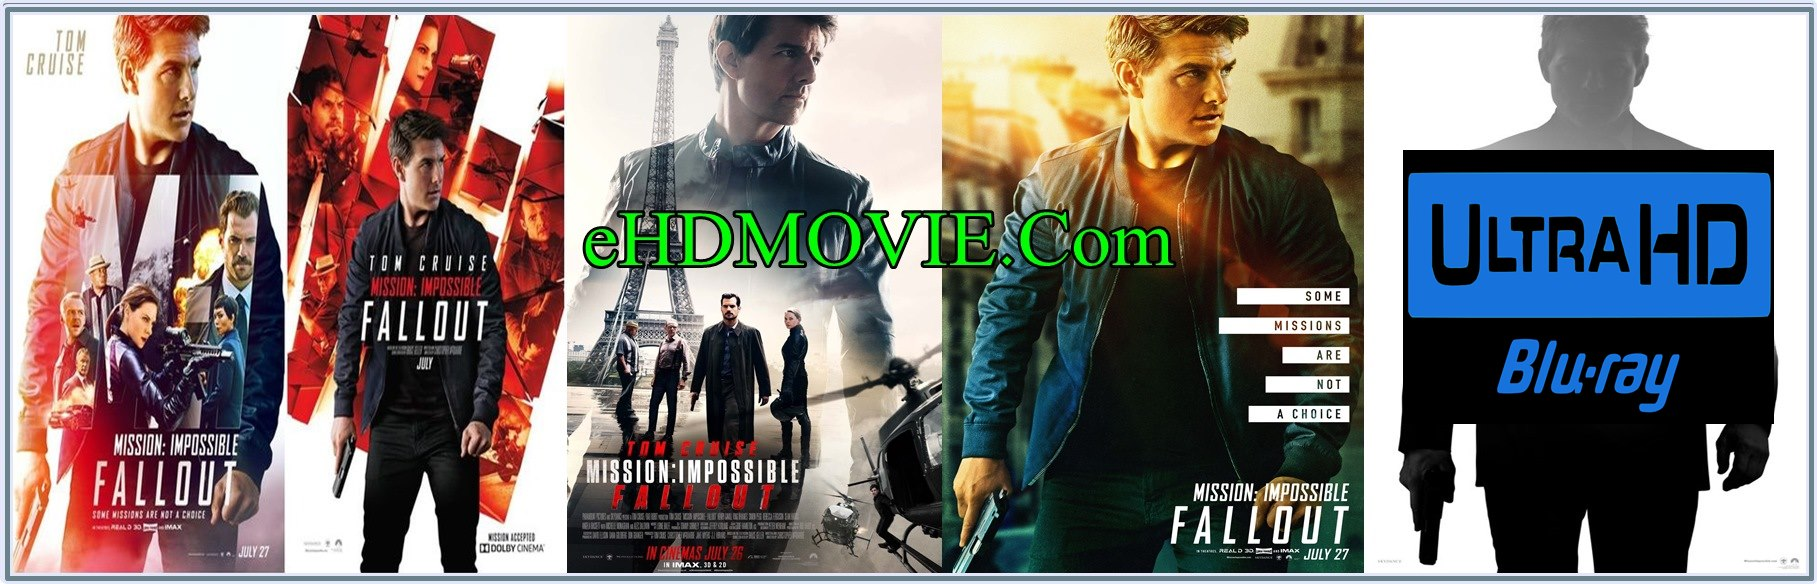 Mission Impossible Fallout 2018 Full Movie Dual Audio [Hindi – English] 1080p - 720p - HEVC - 480p ORG Blu-Ray 500MB - 700MB - 1.6GB - 2.5GB - 4GB ESubs Free Download